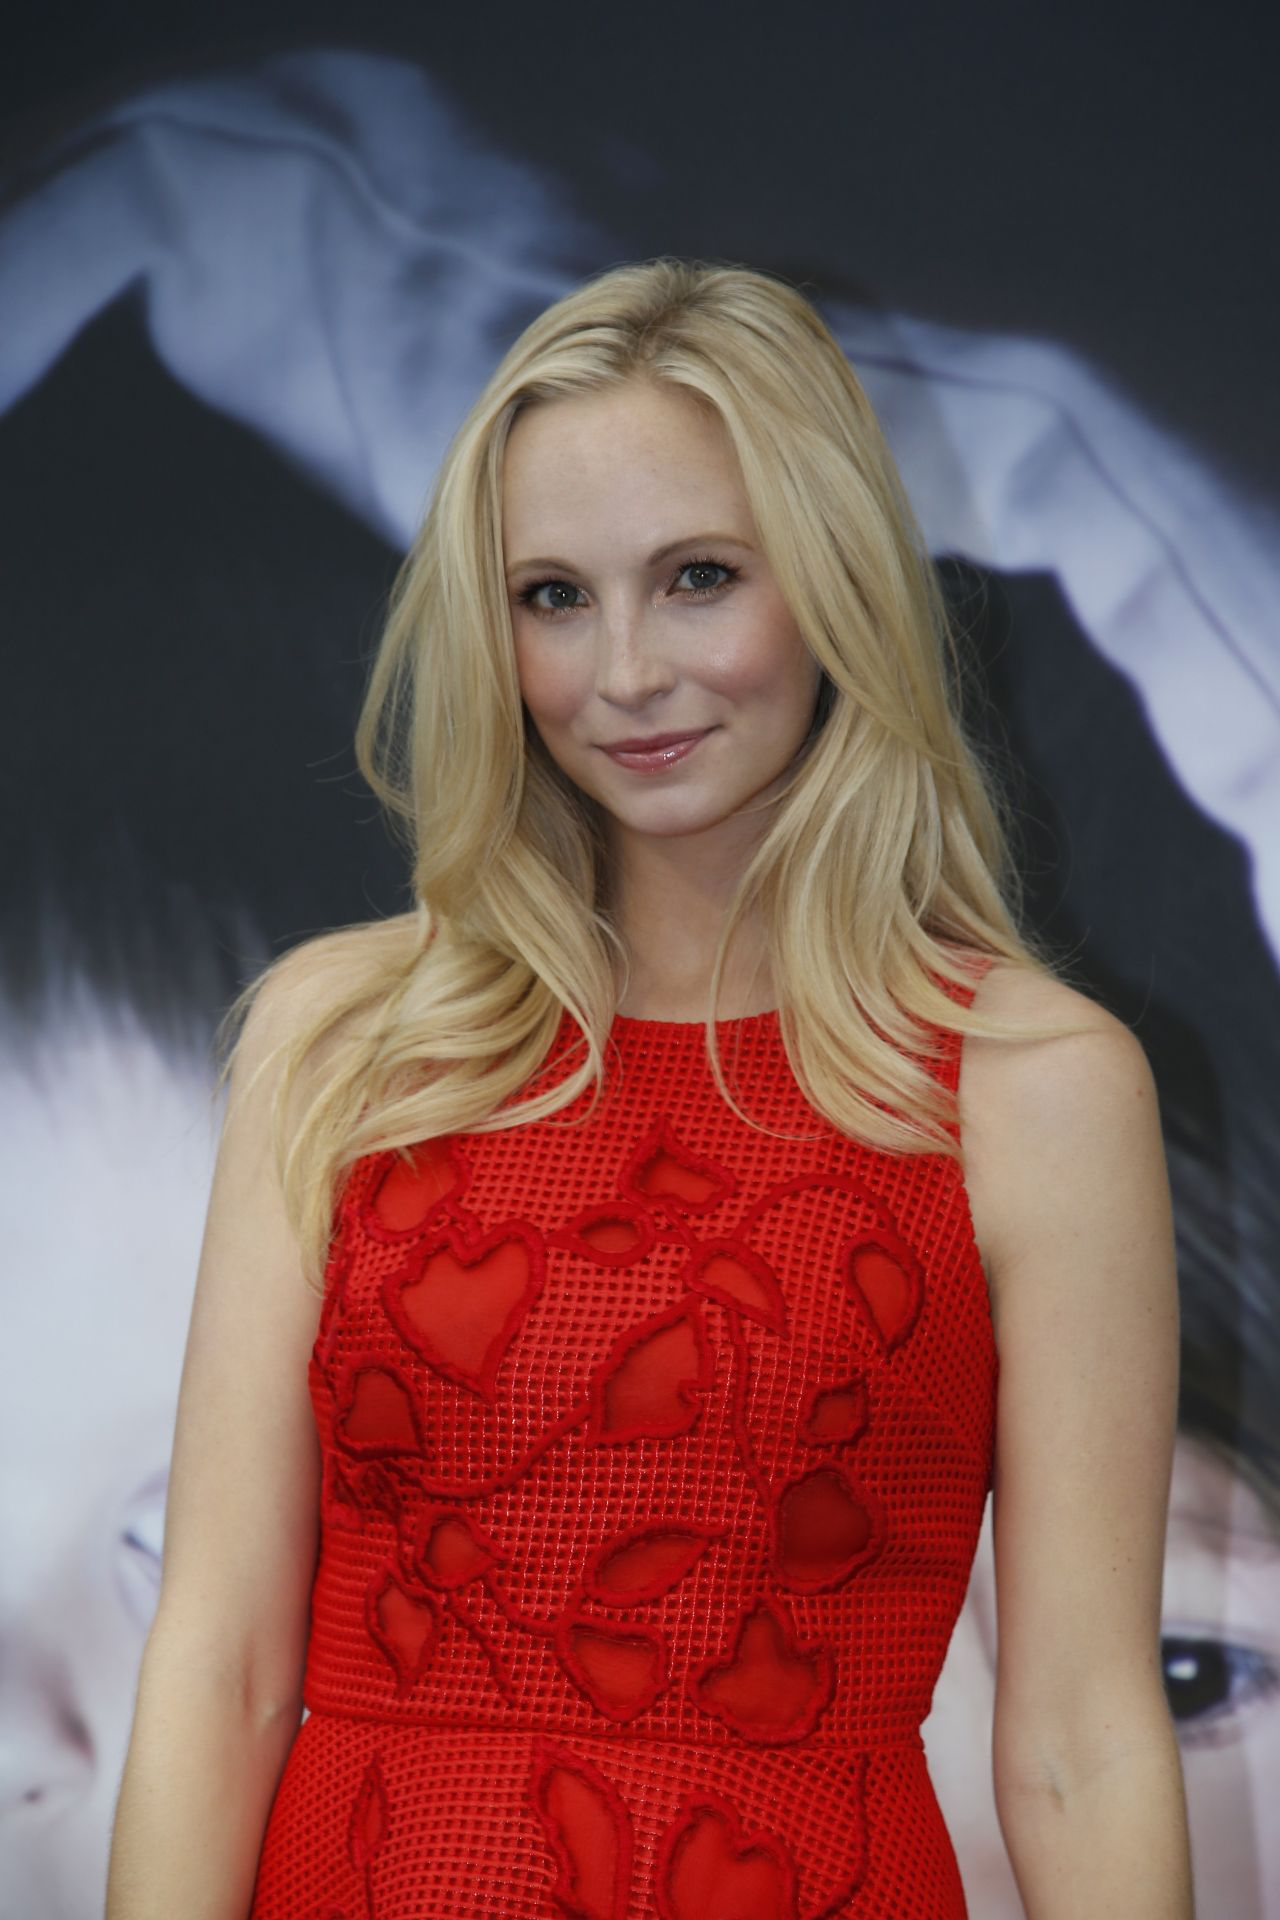 Who has candice accola dating